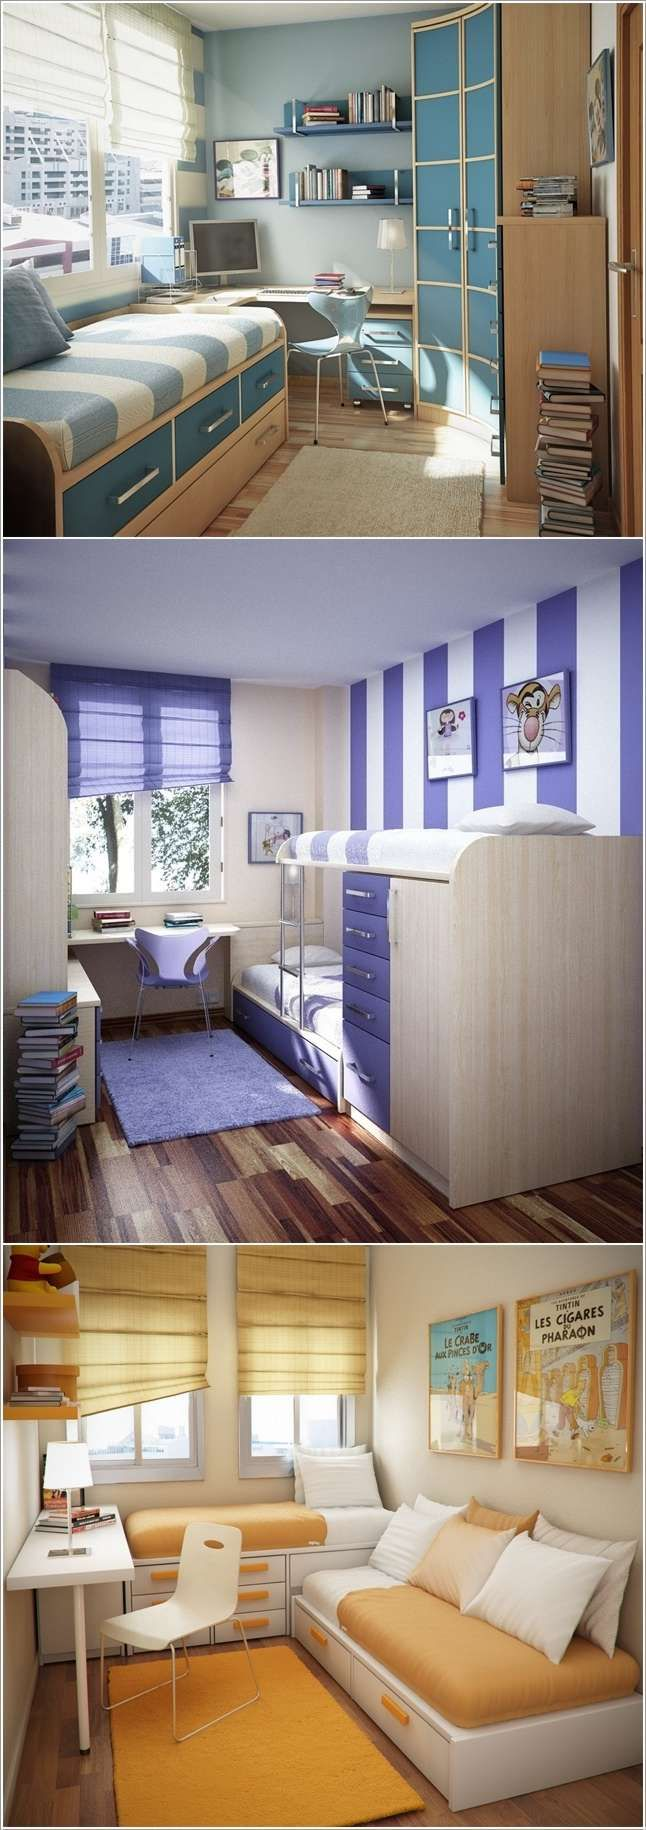 Study Room Storage: 5 Space Saving Ideas To Add A Study Space To Your Kids